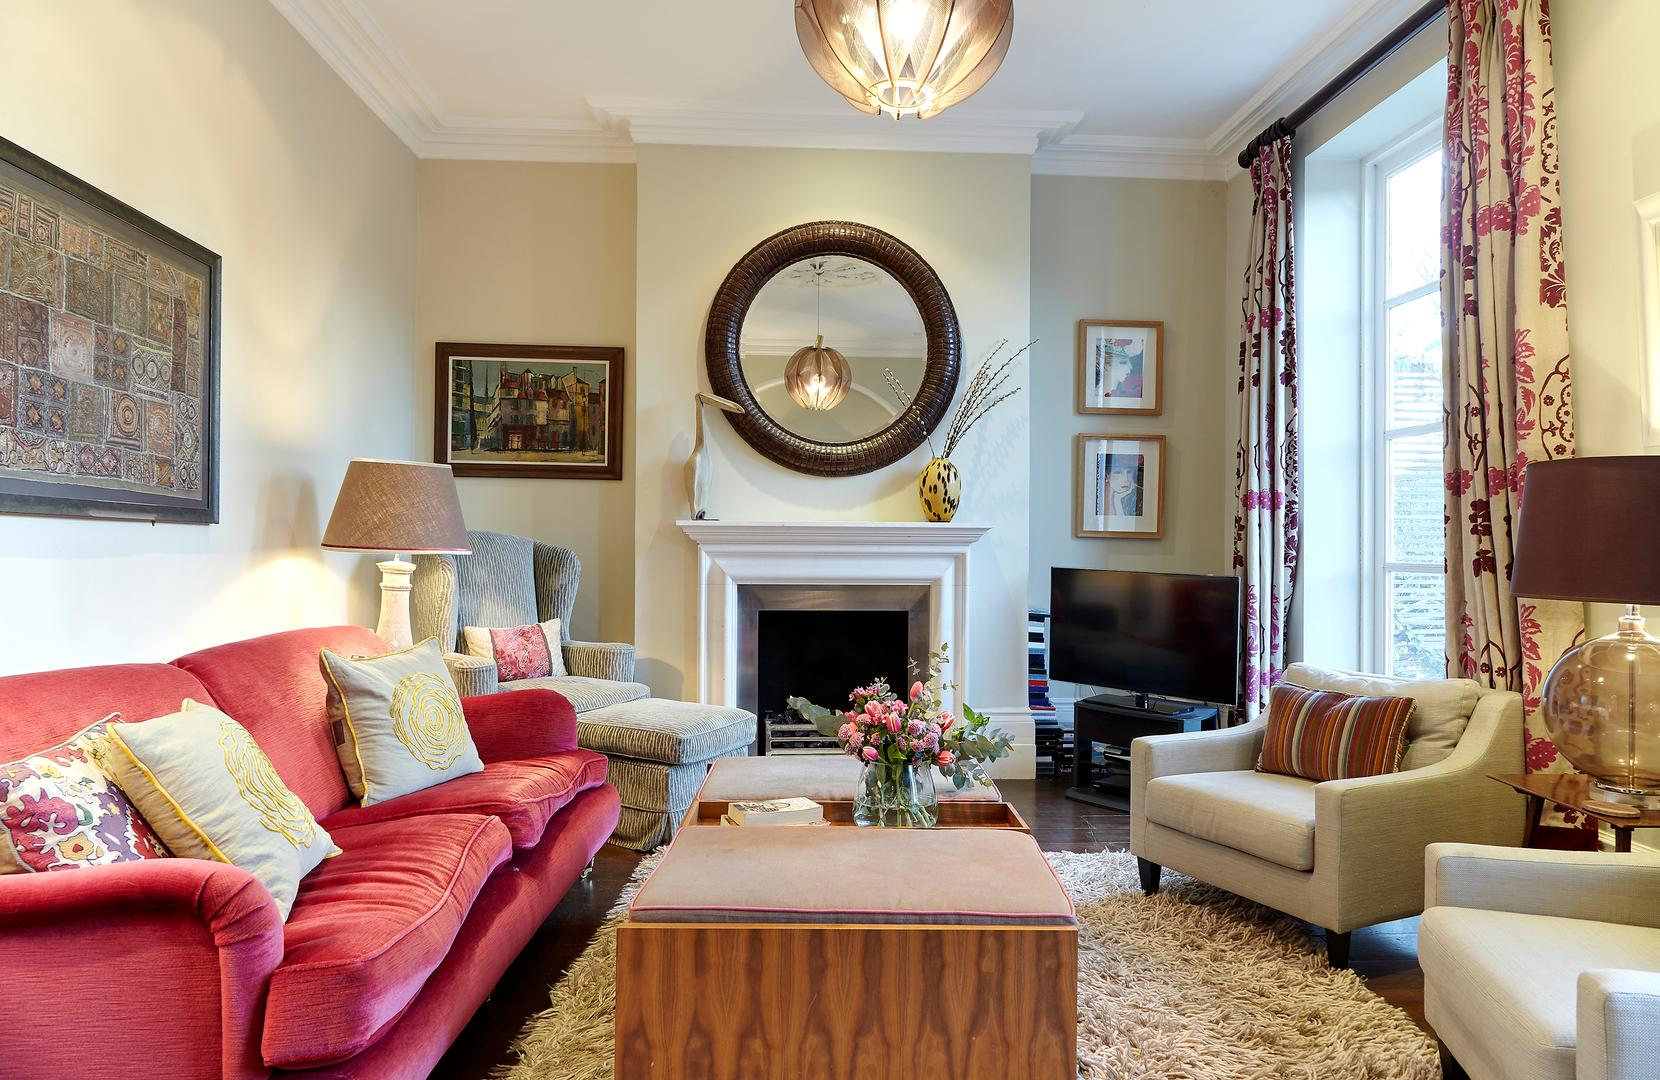 Property Image 2 - Chic Spacious Battersea Apartment by Wandsworth Common